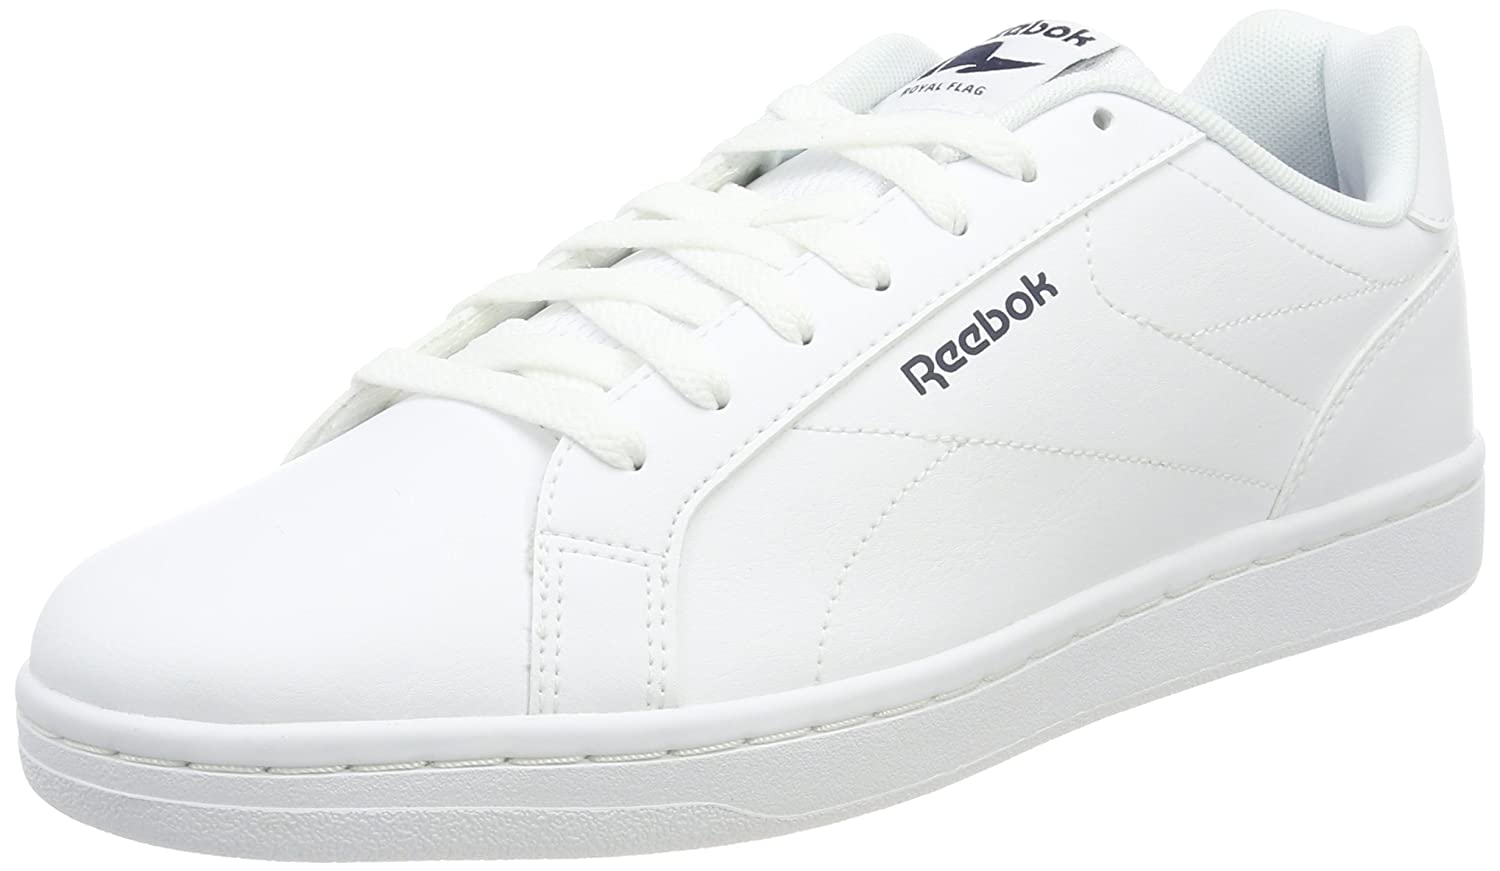 Reebok Royal Complete CLN, Zapatillas para Hombre, Weiss (White/Collegiate Navy 0), EU